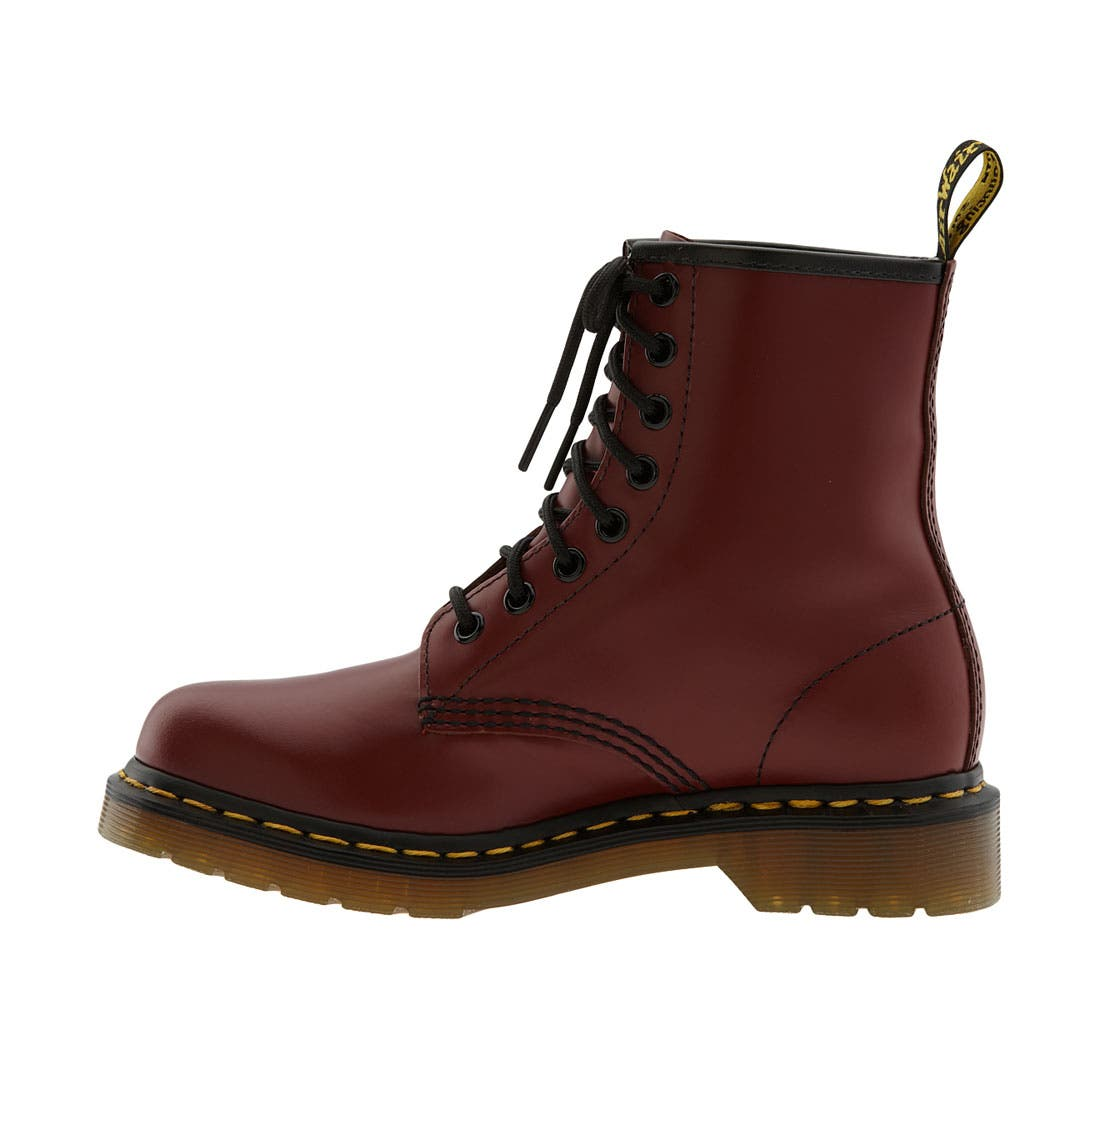 '1460 W' Boot,                             Alternate thumbnail 6, color,                             CHERRY